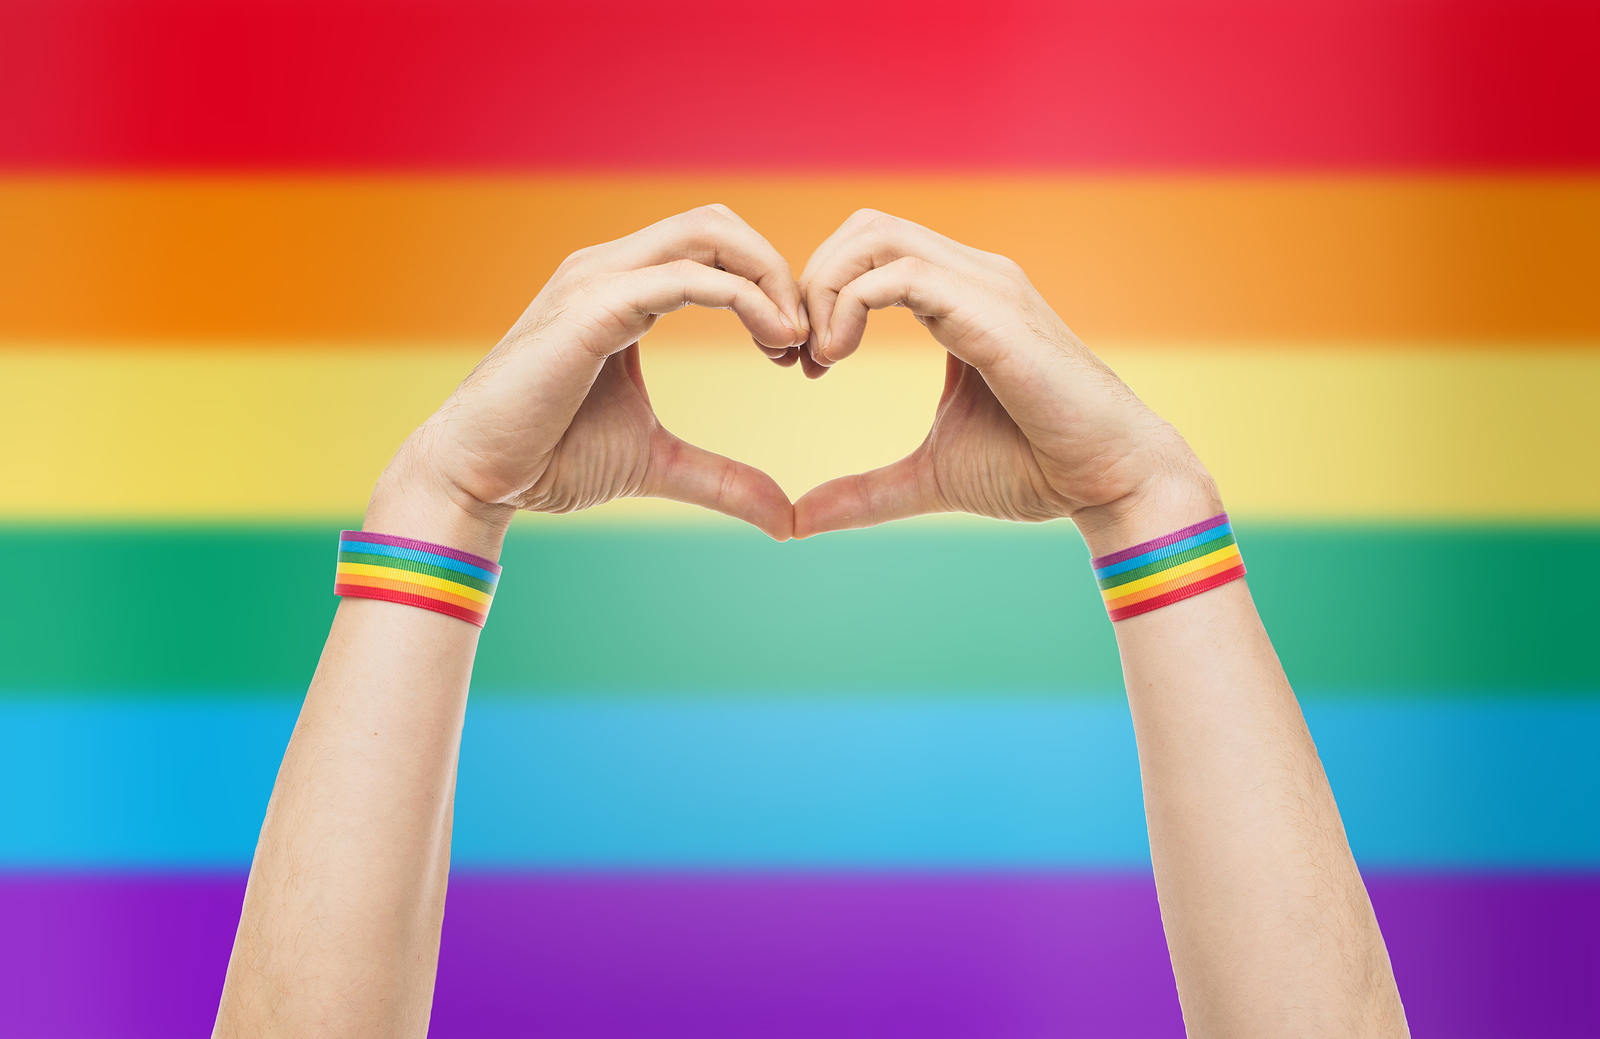 A pair of hands make a heart symbol with LGBTQ colors behind. Group therapy in West Bloomfield, MI can offer support. Learn about our LGBTQ youth groups in West Bloomfield, MI and the other services we offer including trauma therapy groups in West Bloomfield, MI.